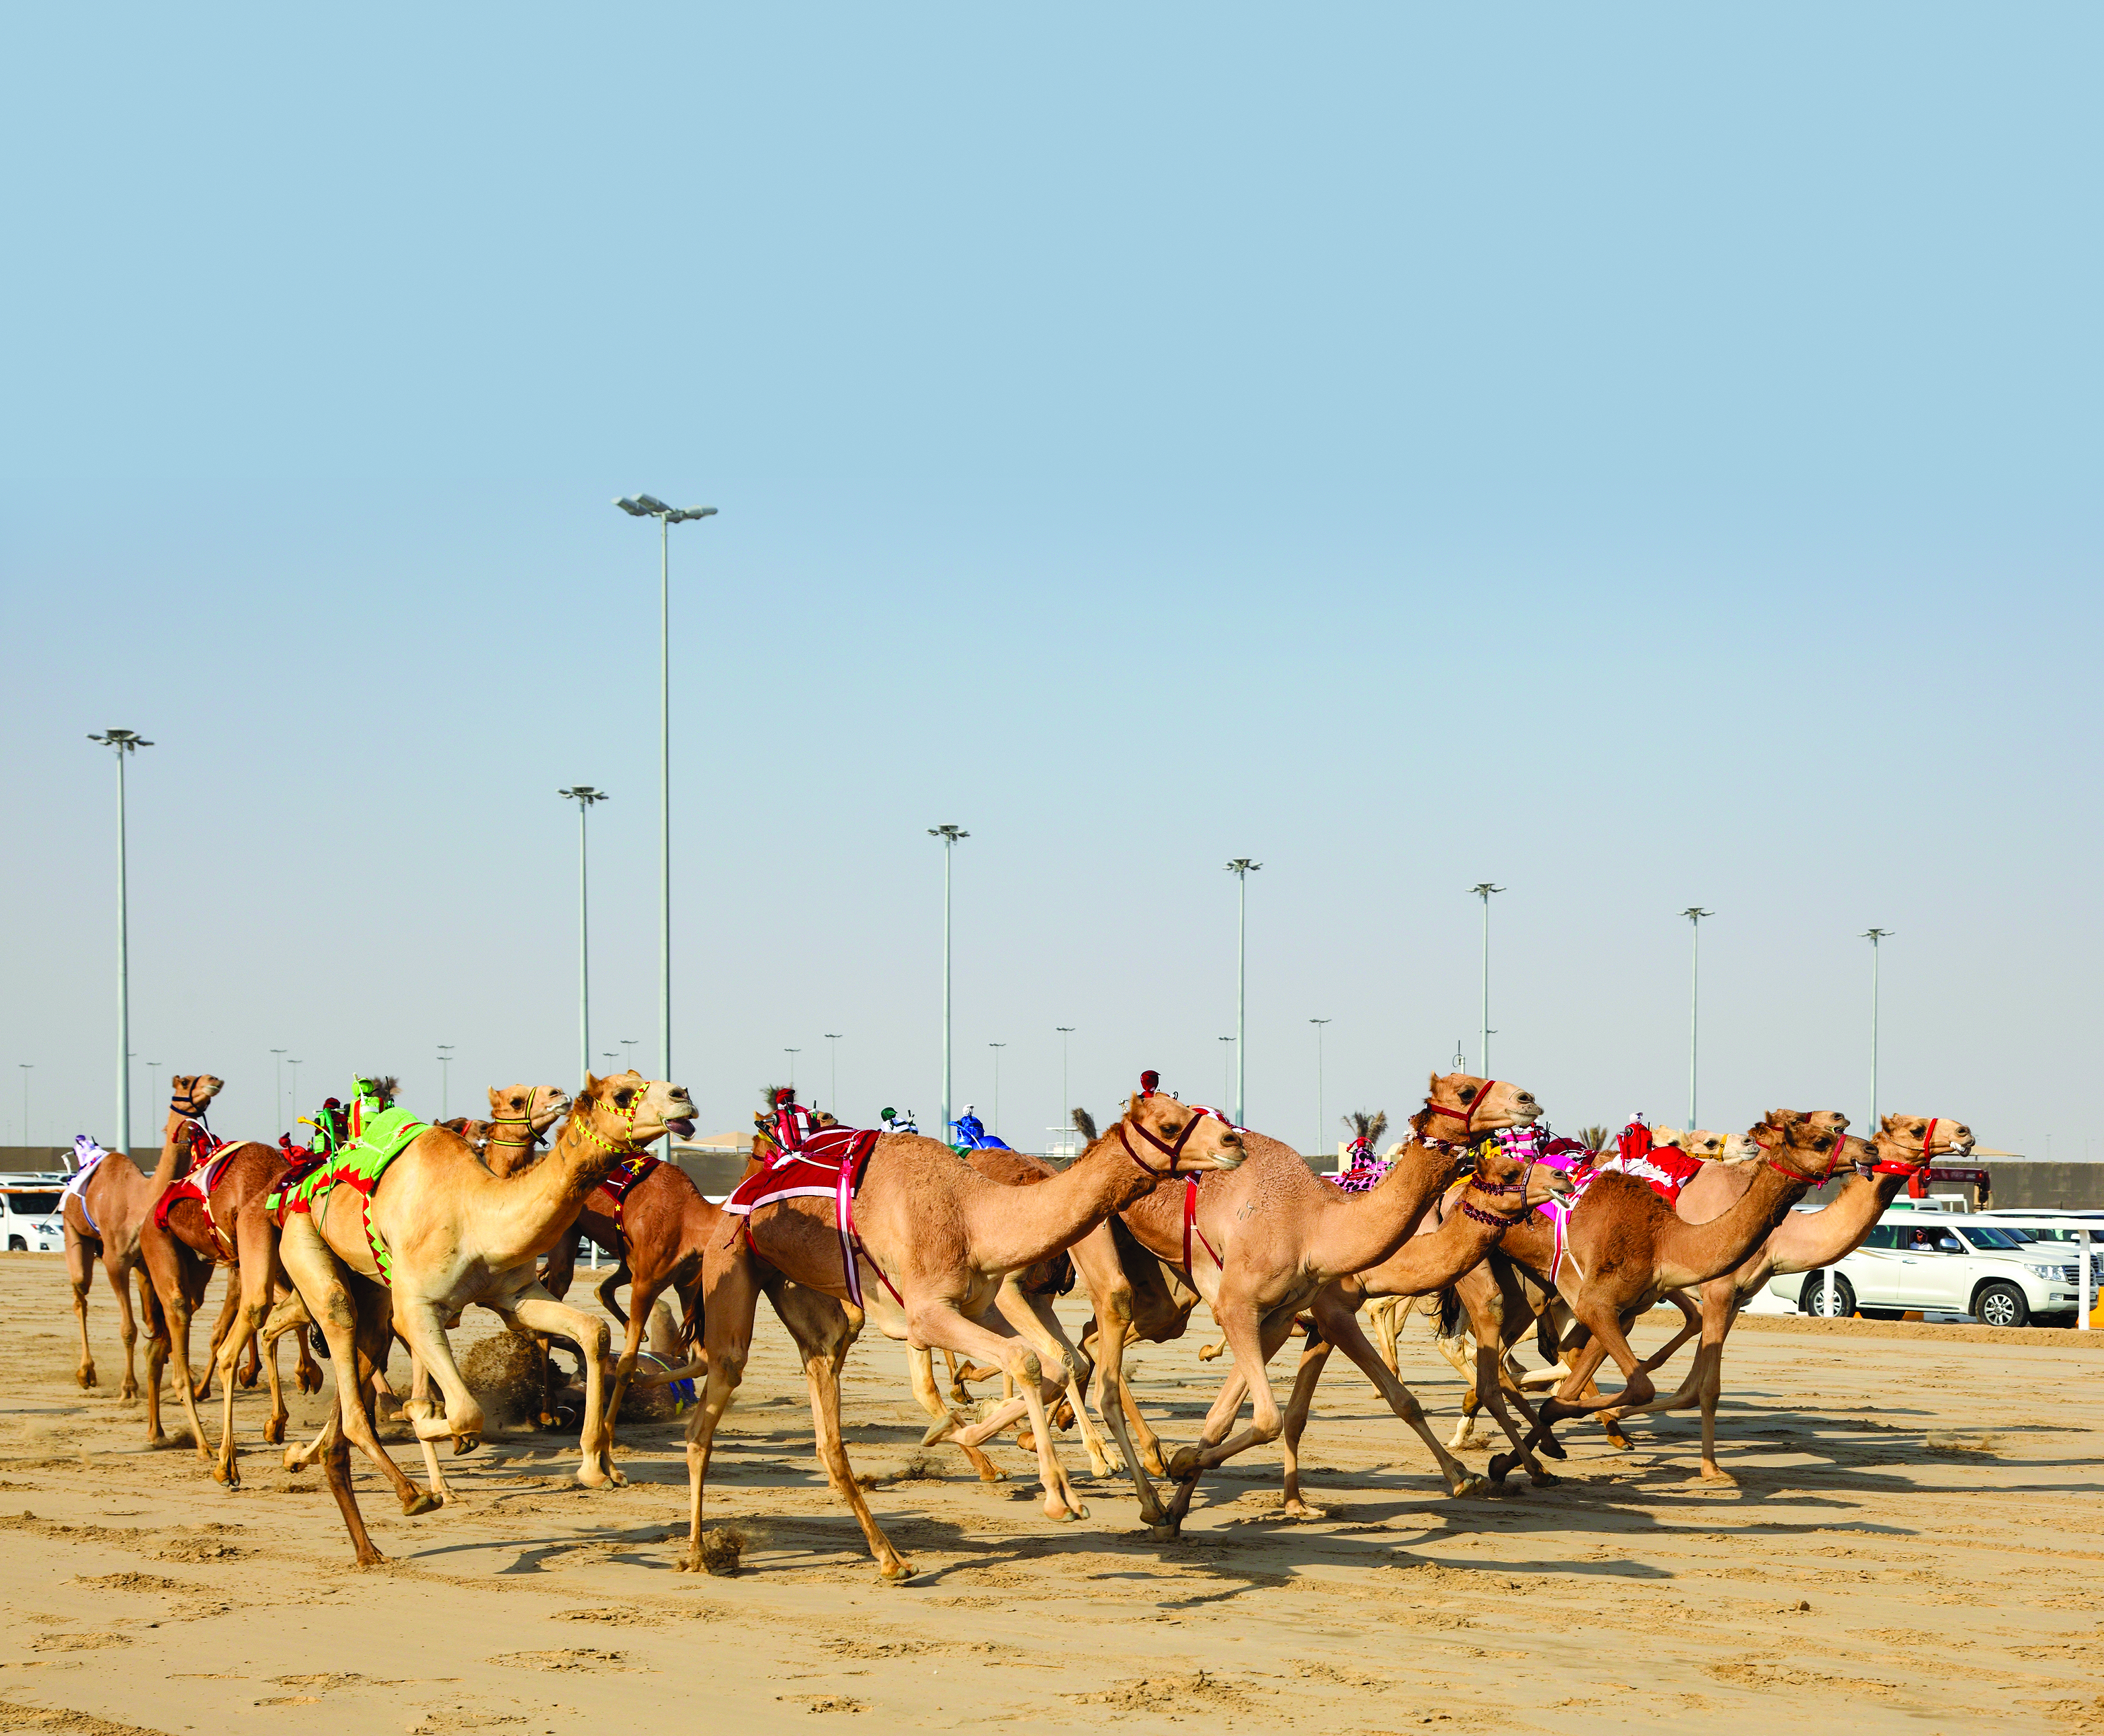 Check out Oman's traditional Camel races, performances and beauty festivals!